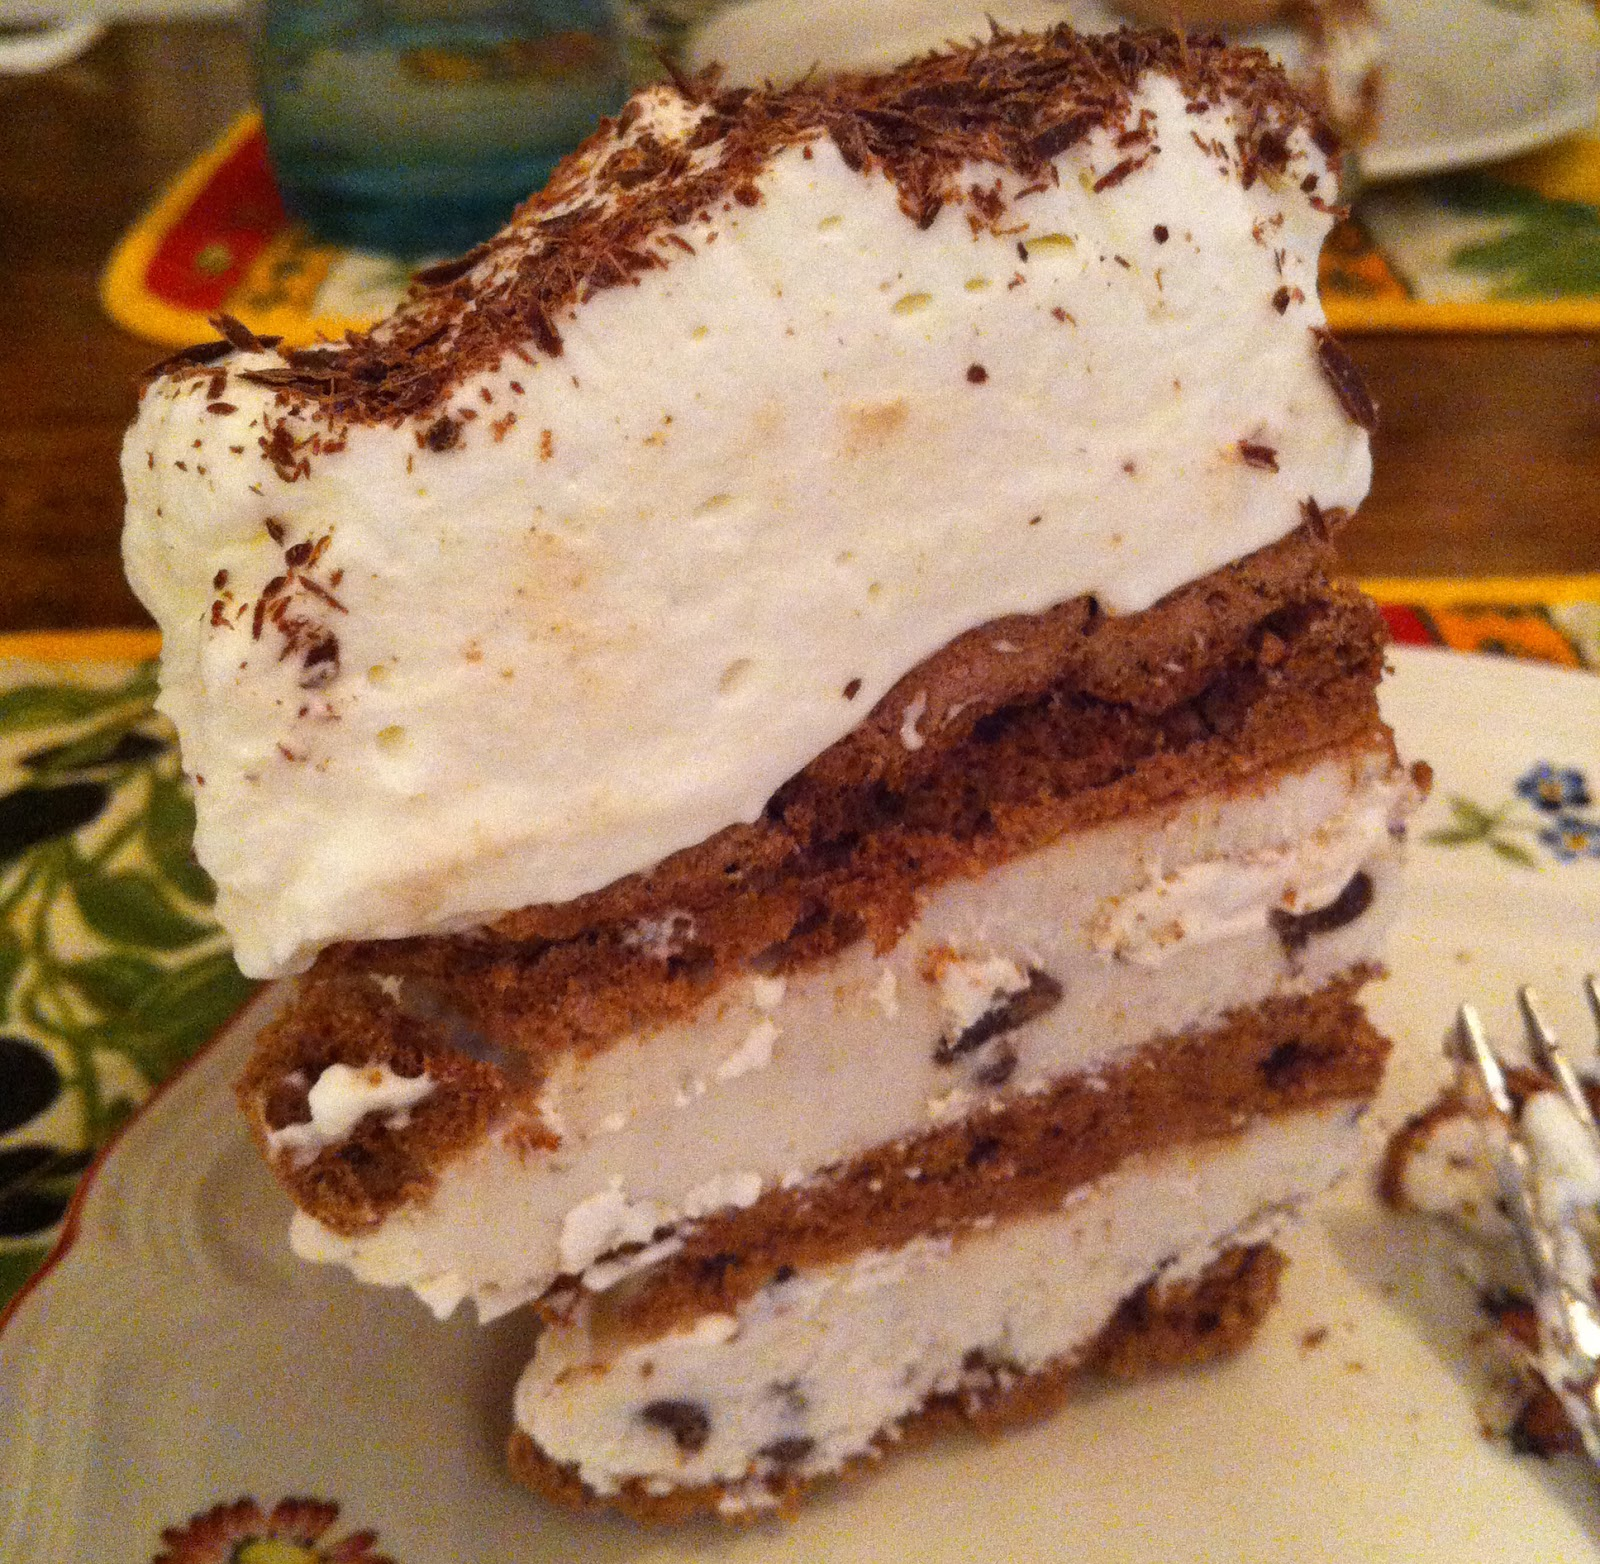 Sybil's Spoon: Chocolate Meringue and Mint Chip Ice Cream Cake